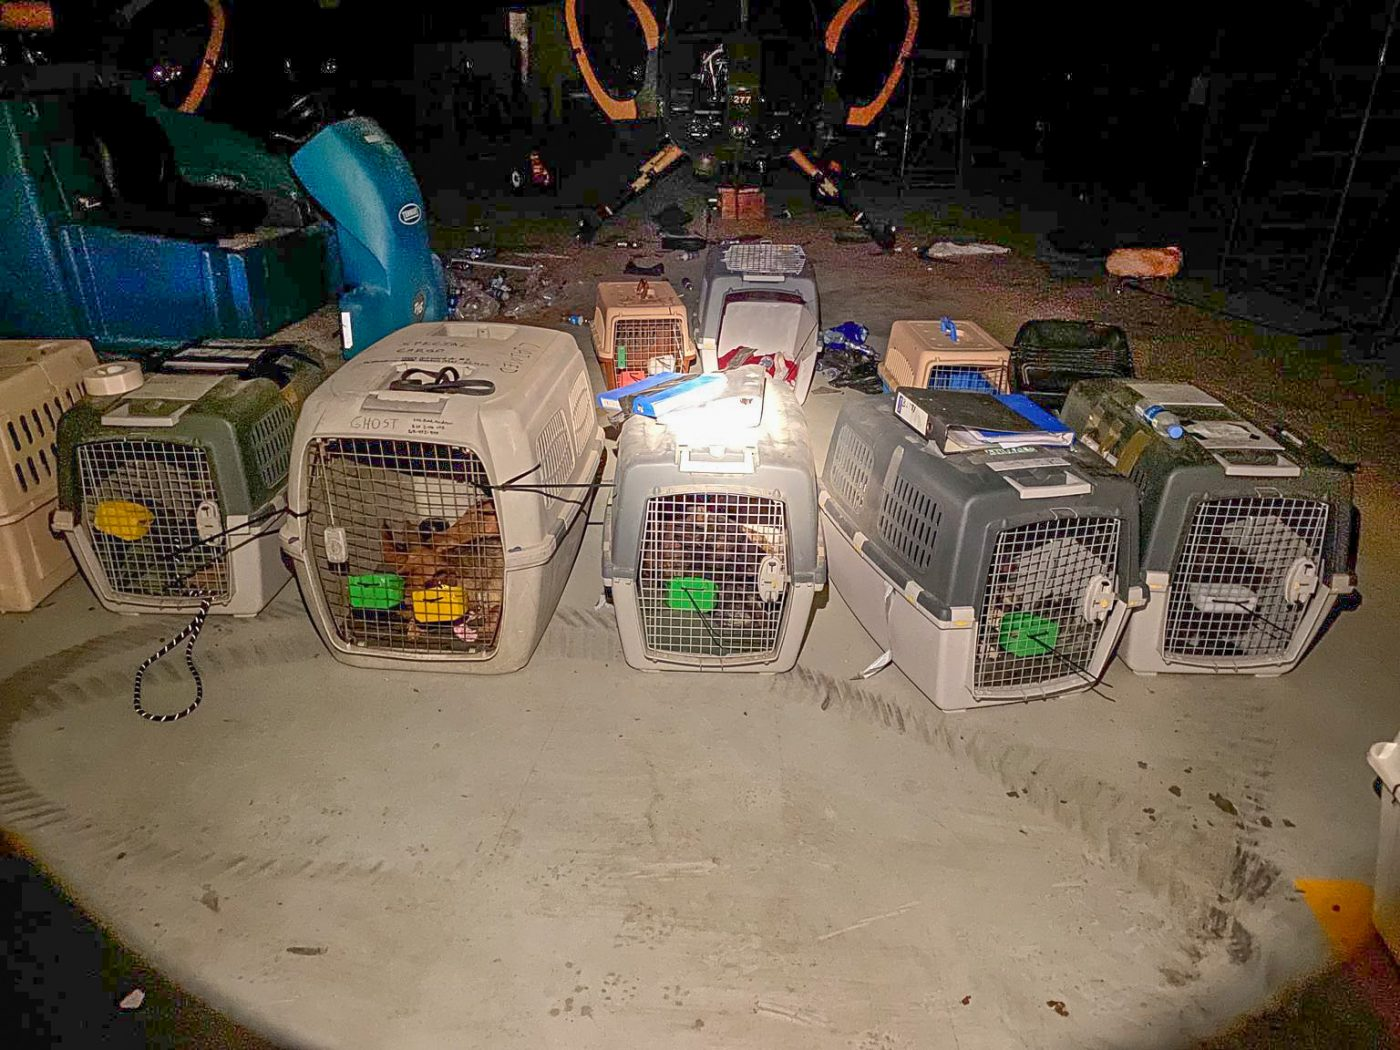 American contractor working dogs abandoned in carriers in Afghanistan on the mass evacuation of people